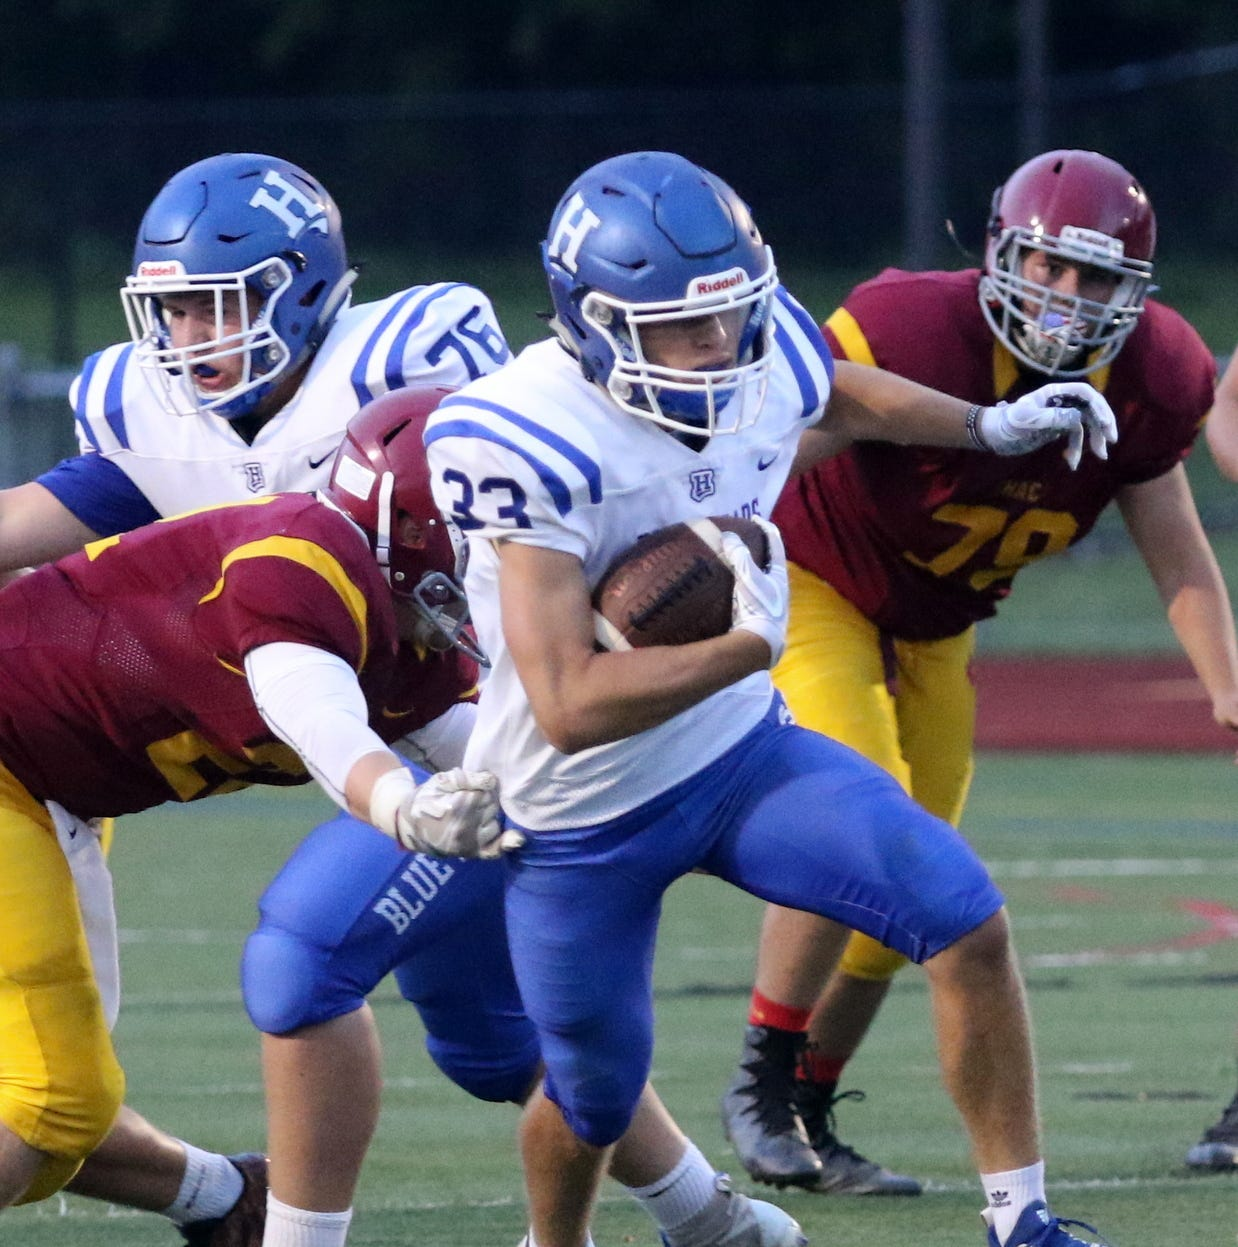 JV call-up Riley Loomis runs for 230 yards as Horseheads rolls past Ithaca